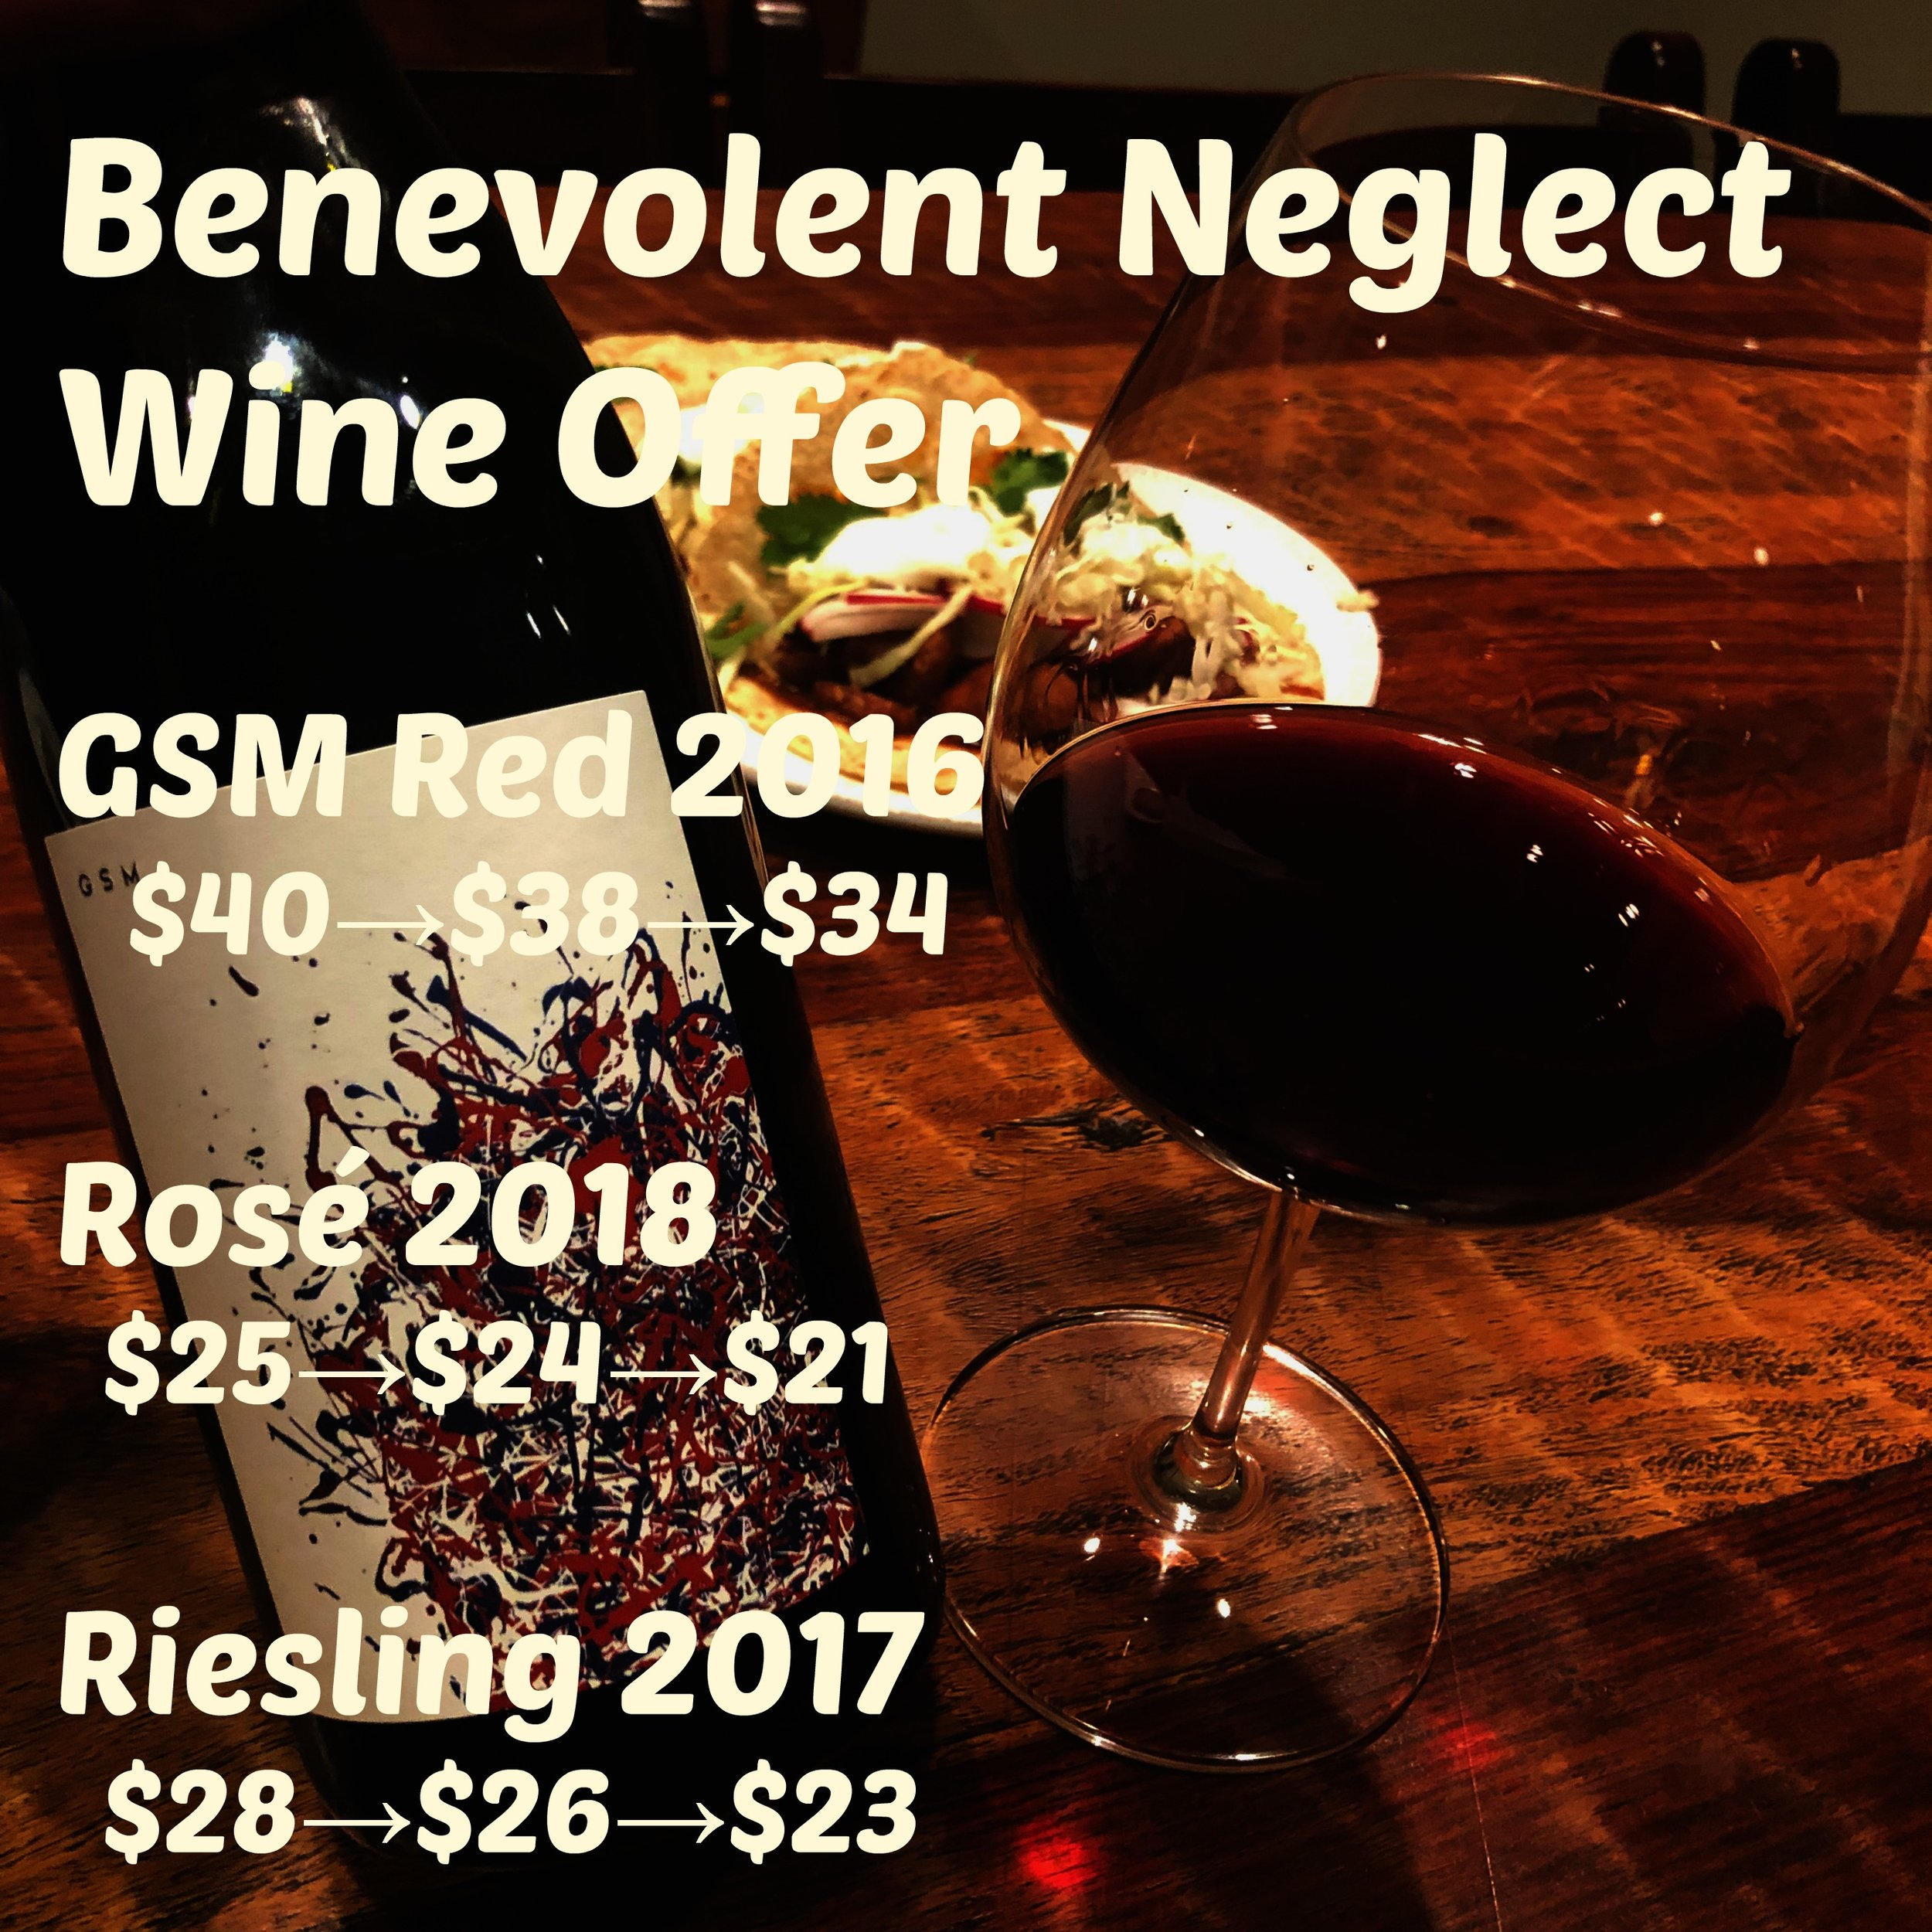 Benevolent Neglect Wine Offer.jpg